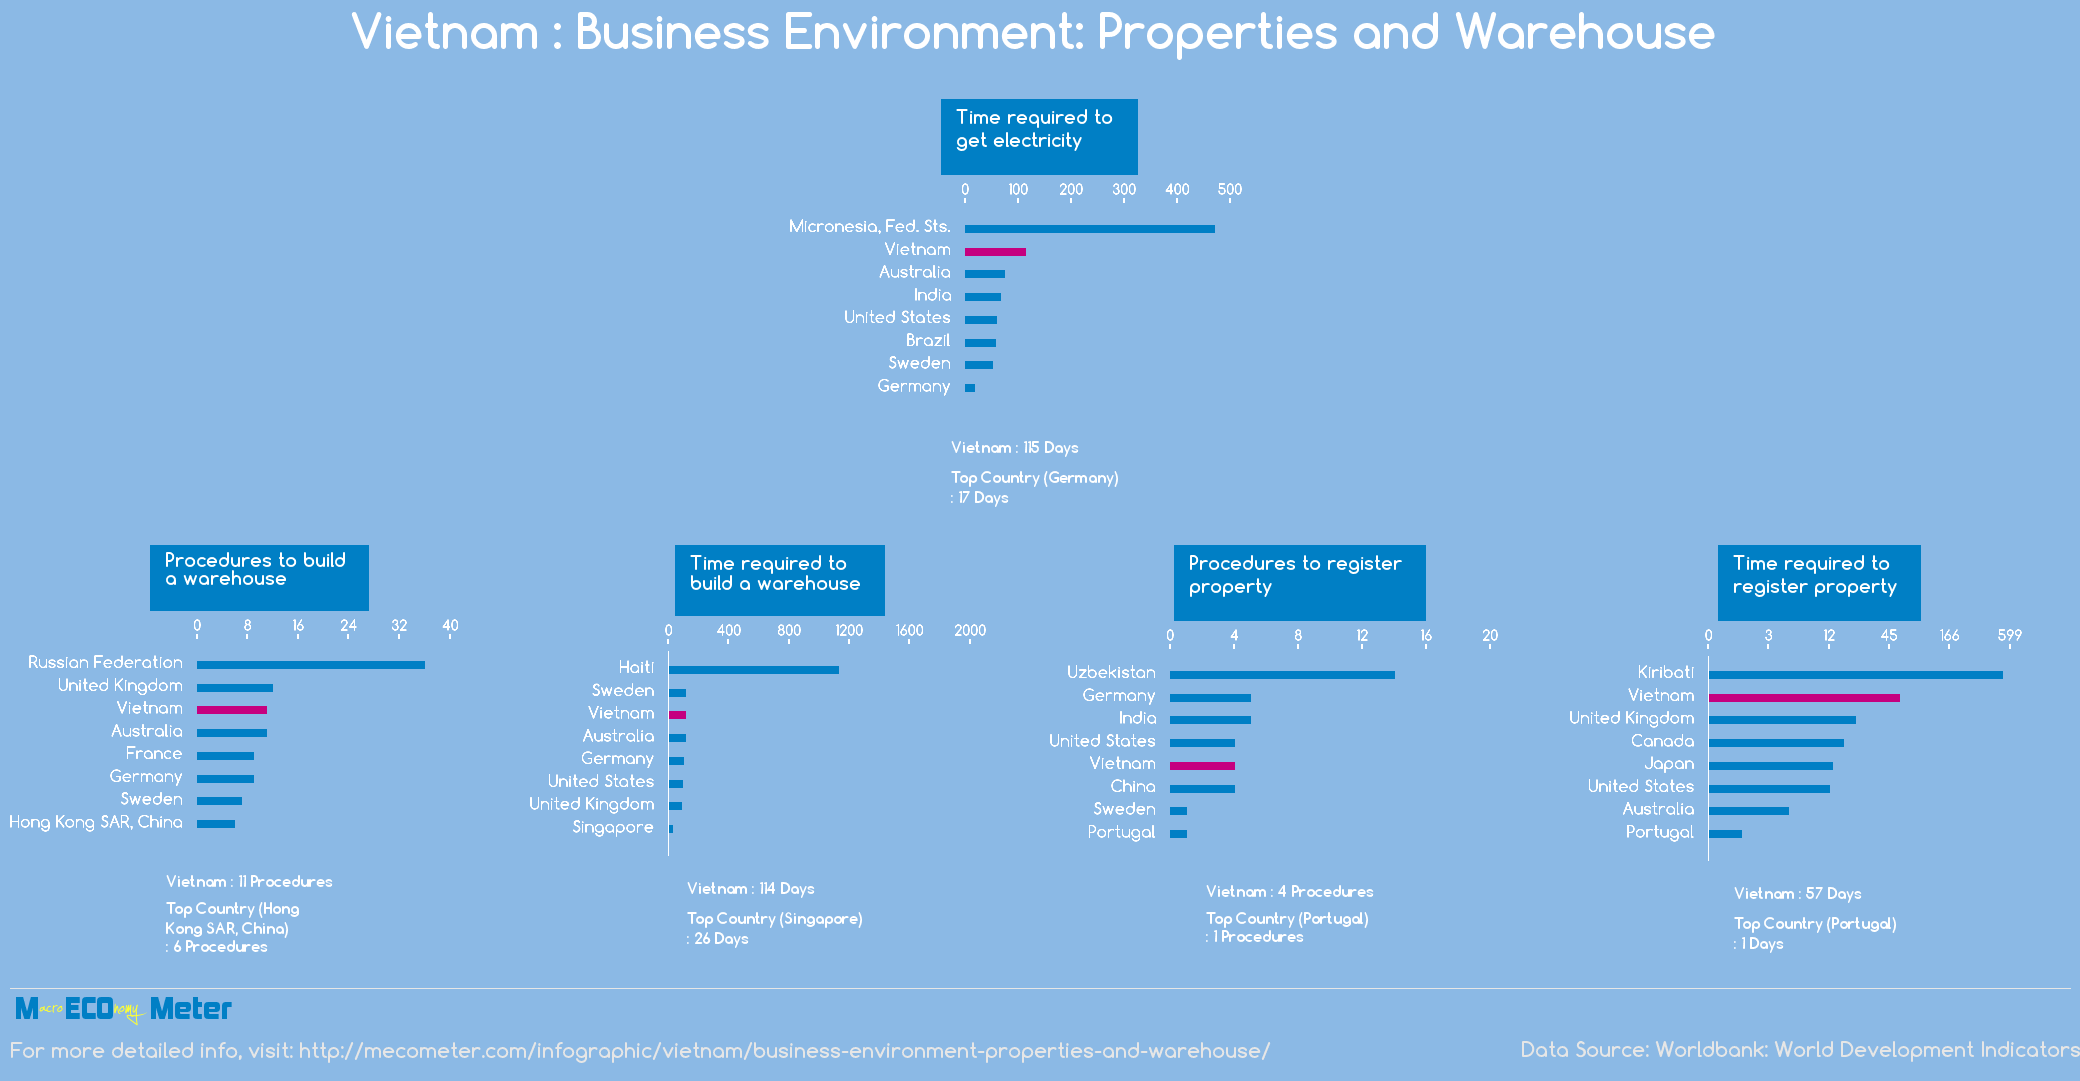 Vietnam : Business Environment: Properties and Warehouse